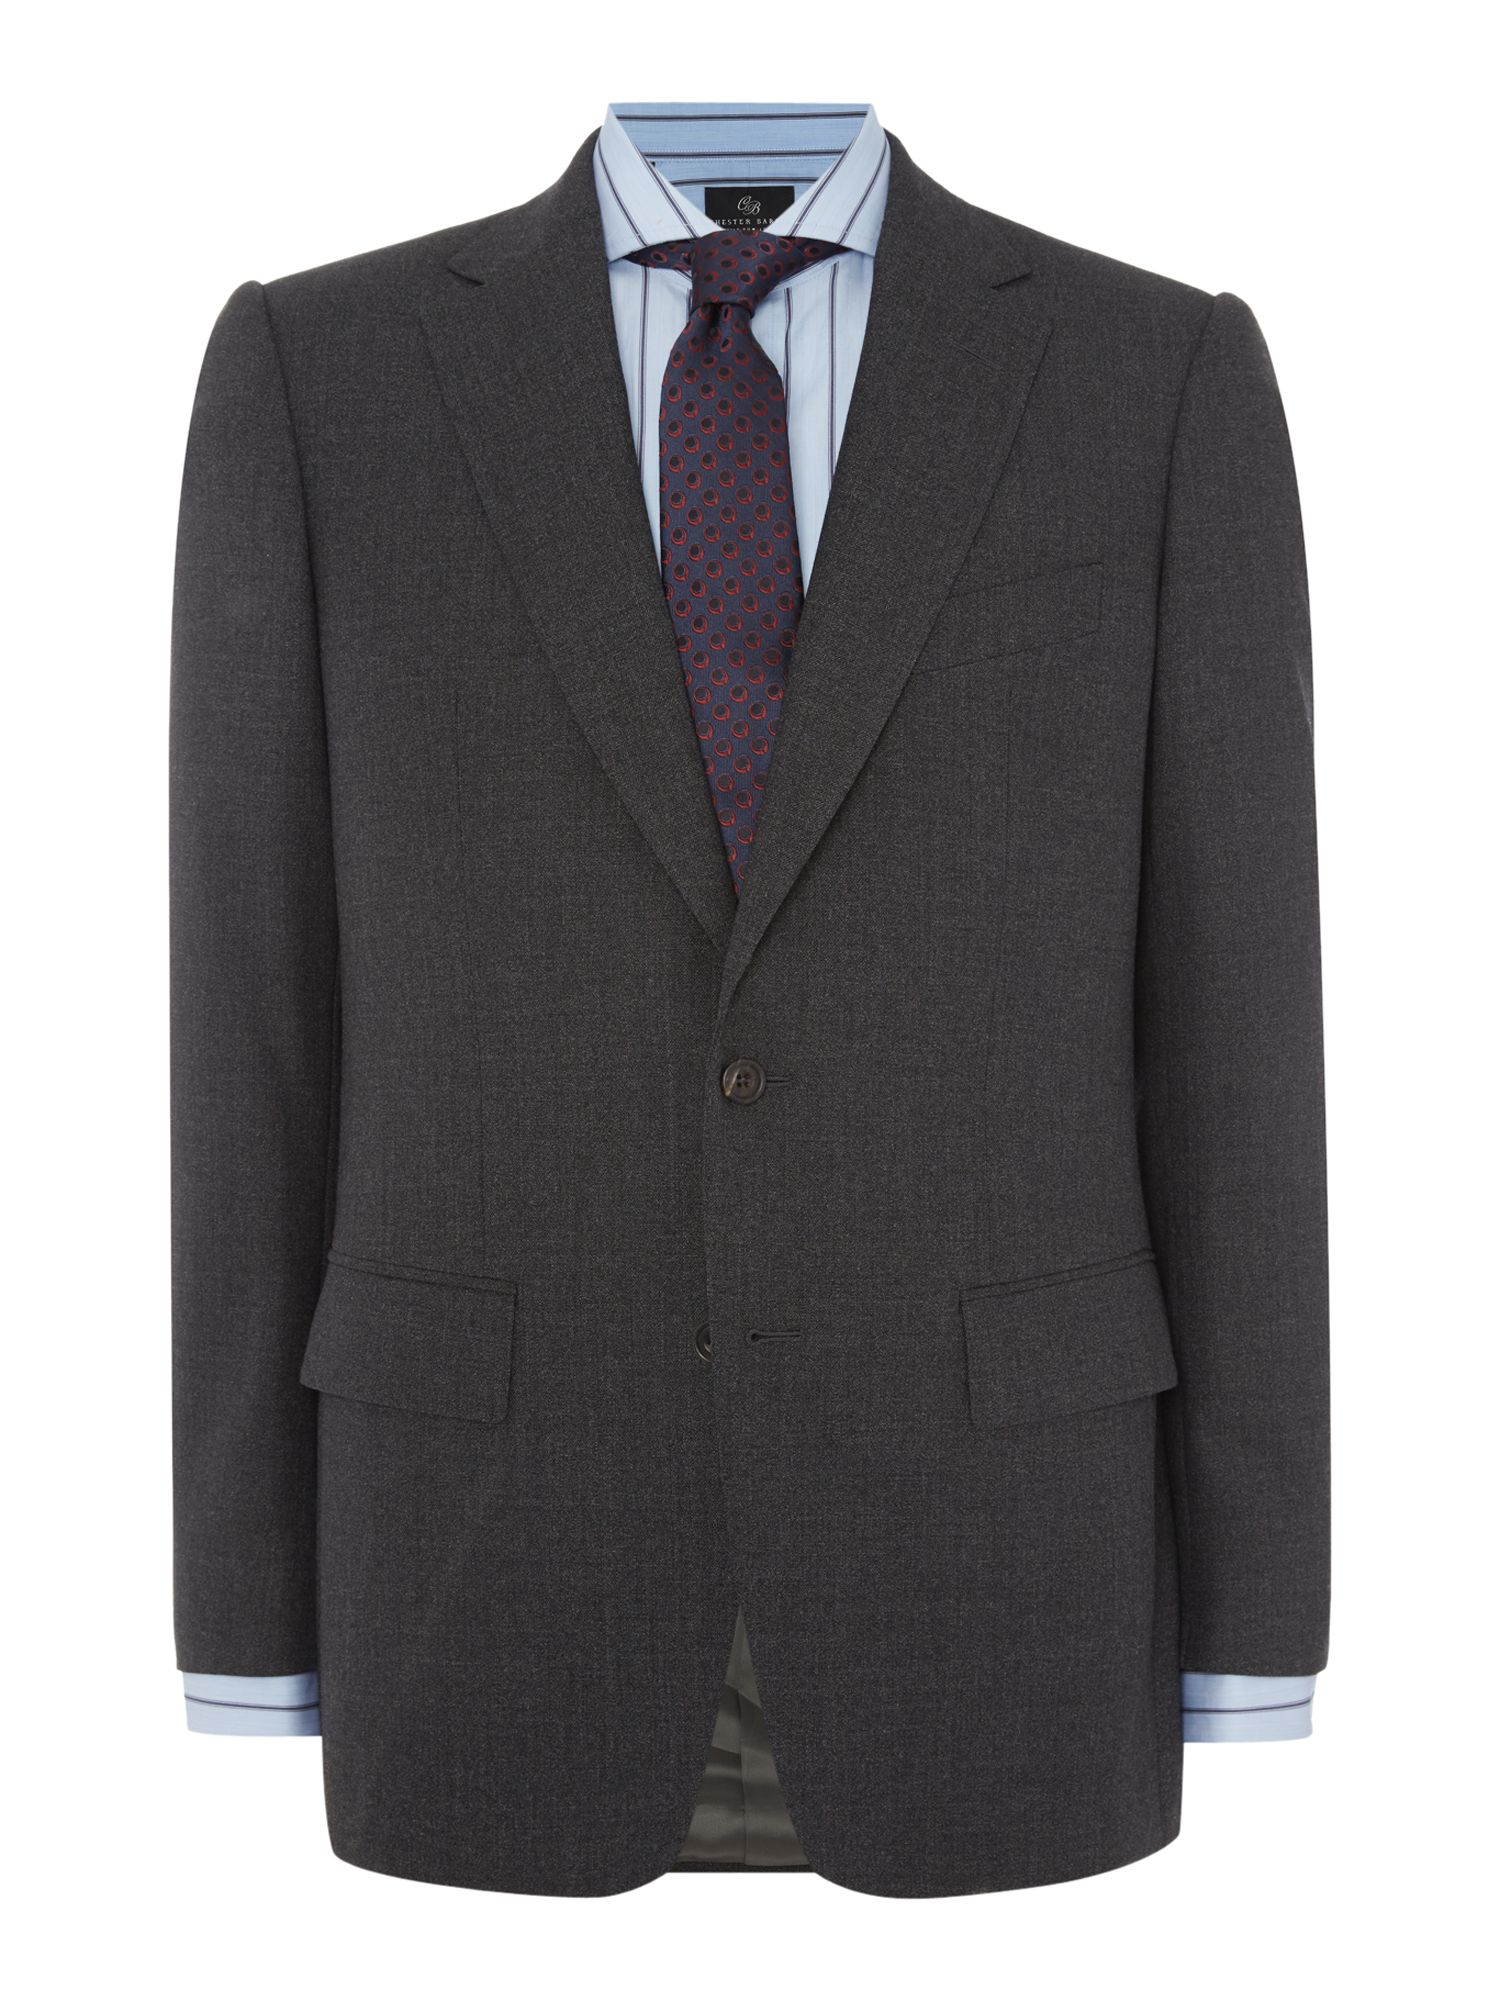 Chester Barrie Men's Chester Barrie Elverton Weave Suit, Charcoal